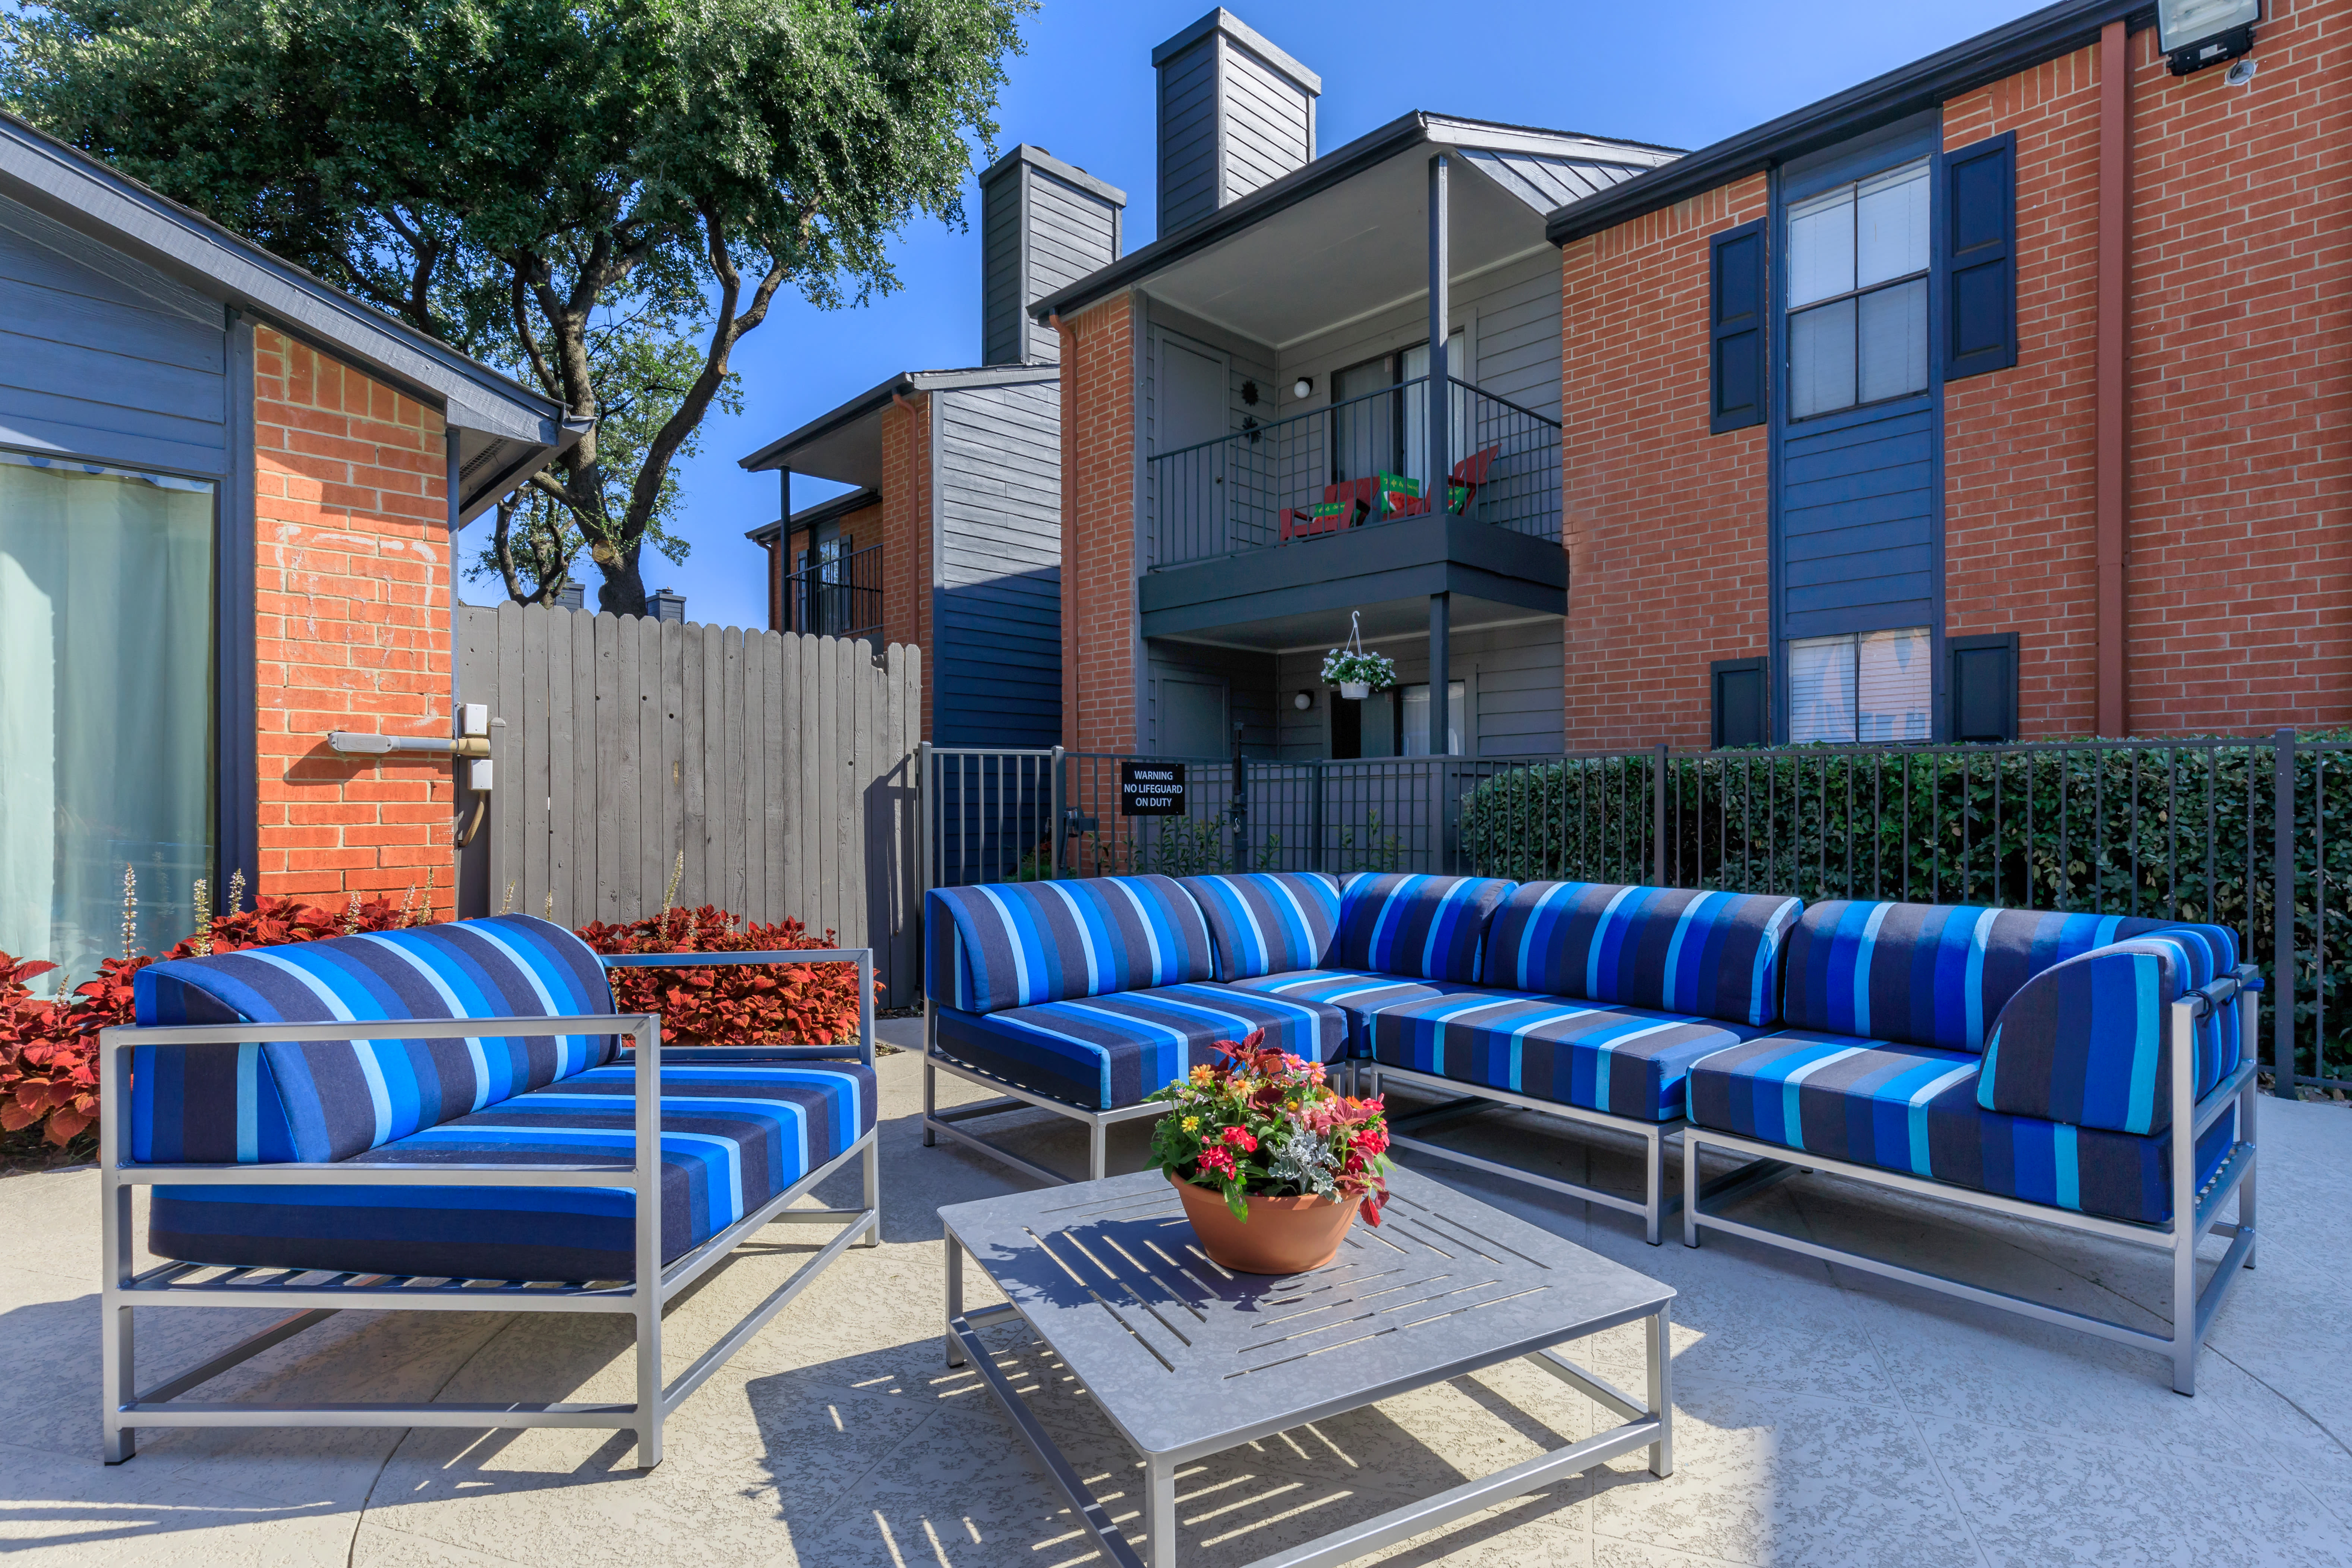 Comfortable patio seating at Windmill Terrace in Bedford, Texas